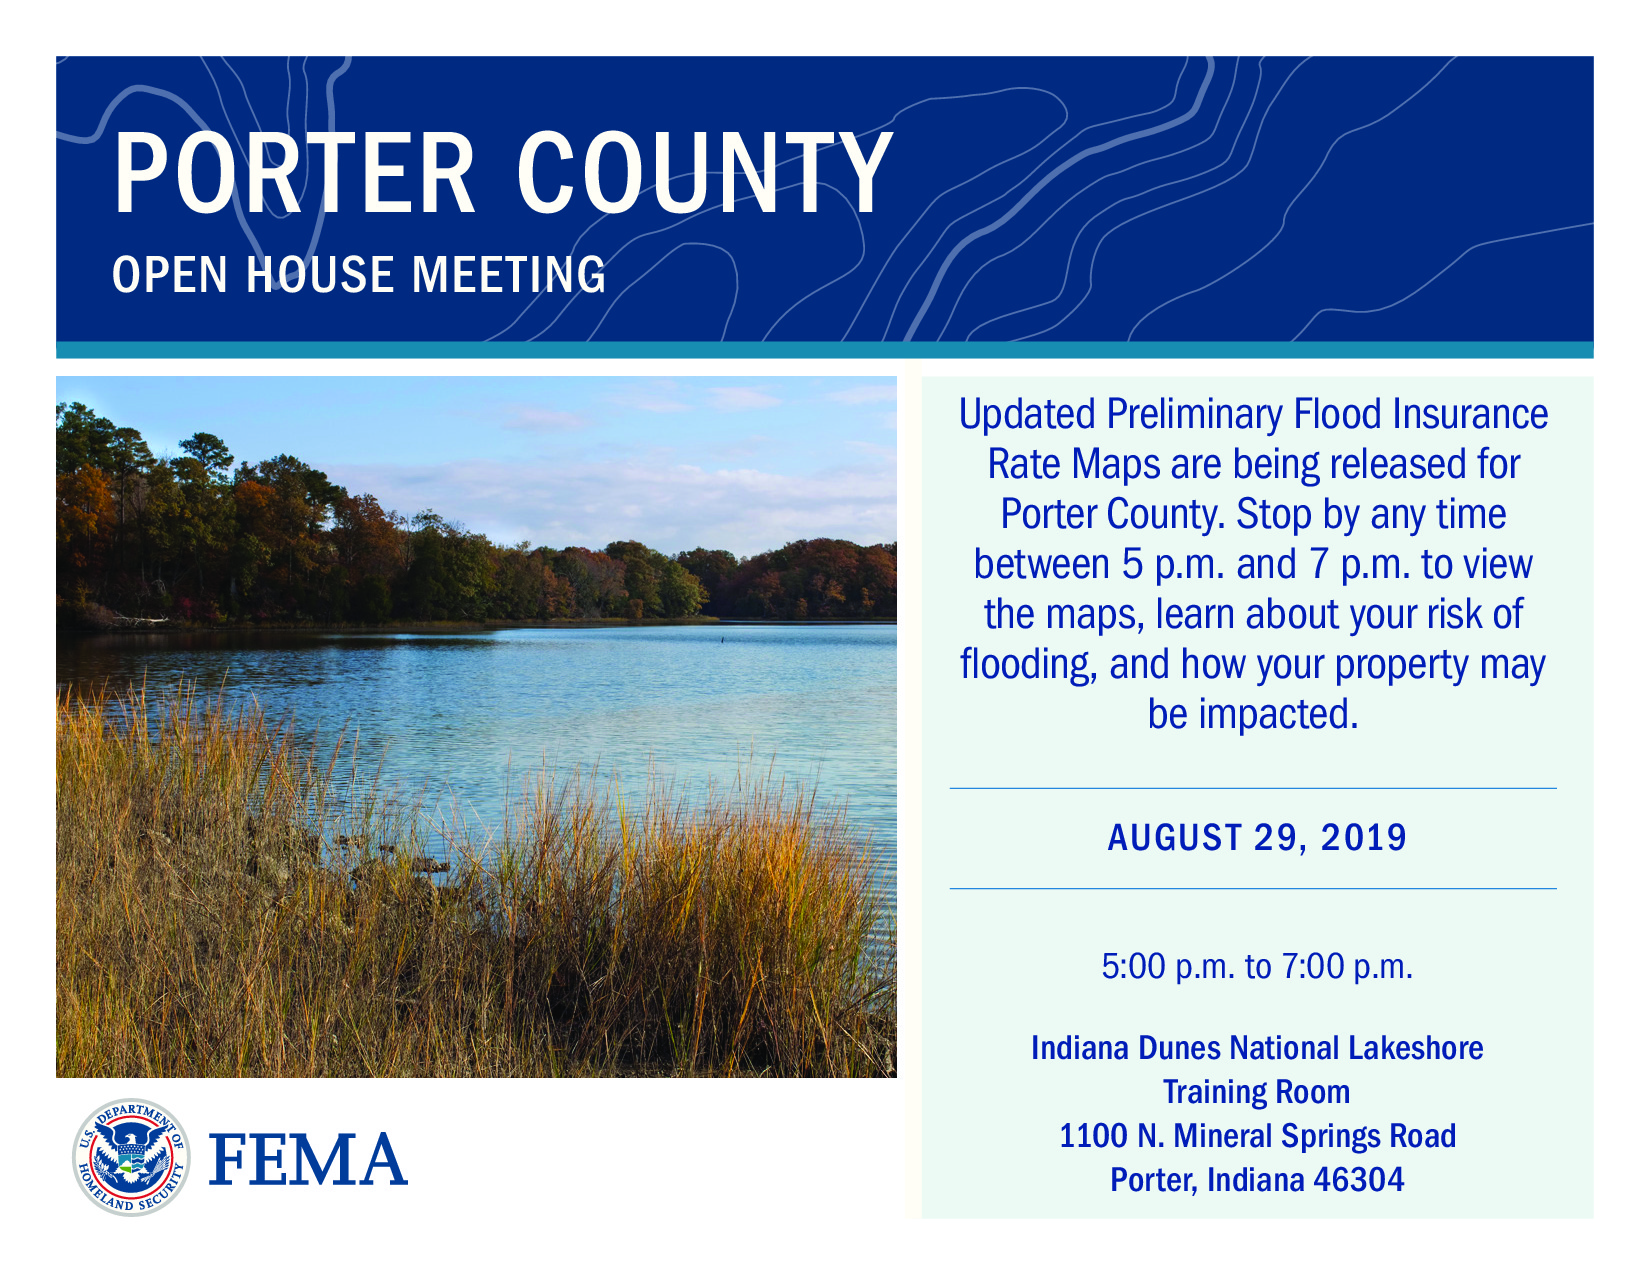 FEMA Open House Notice